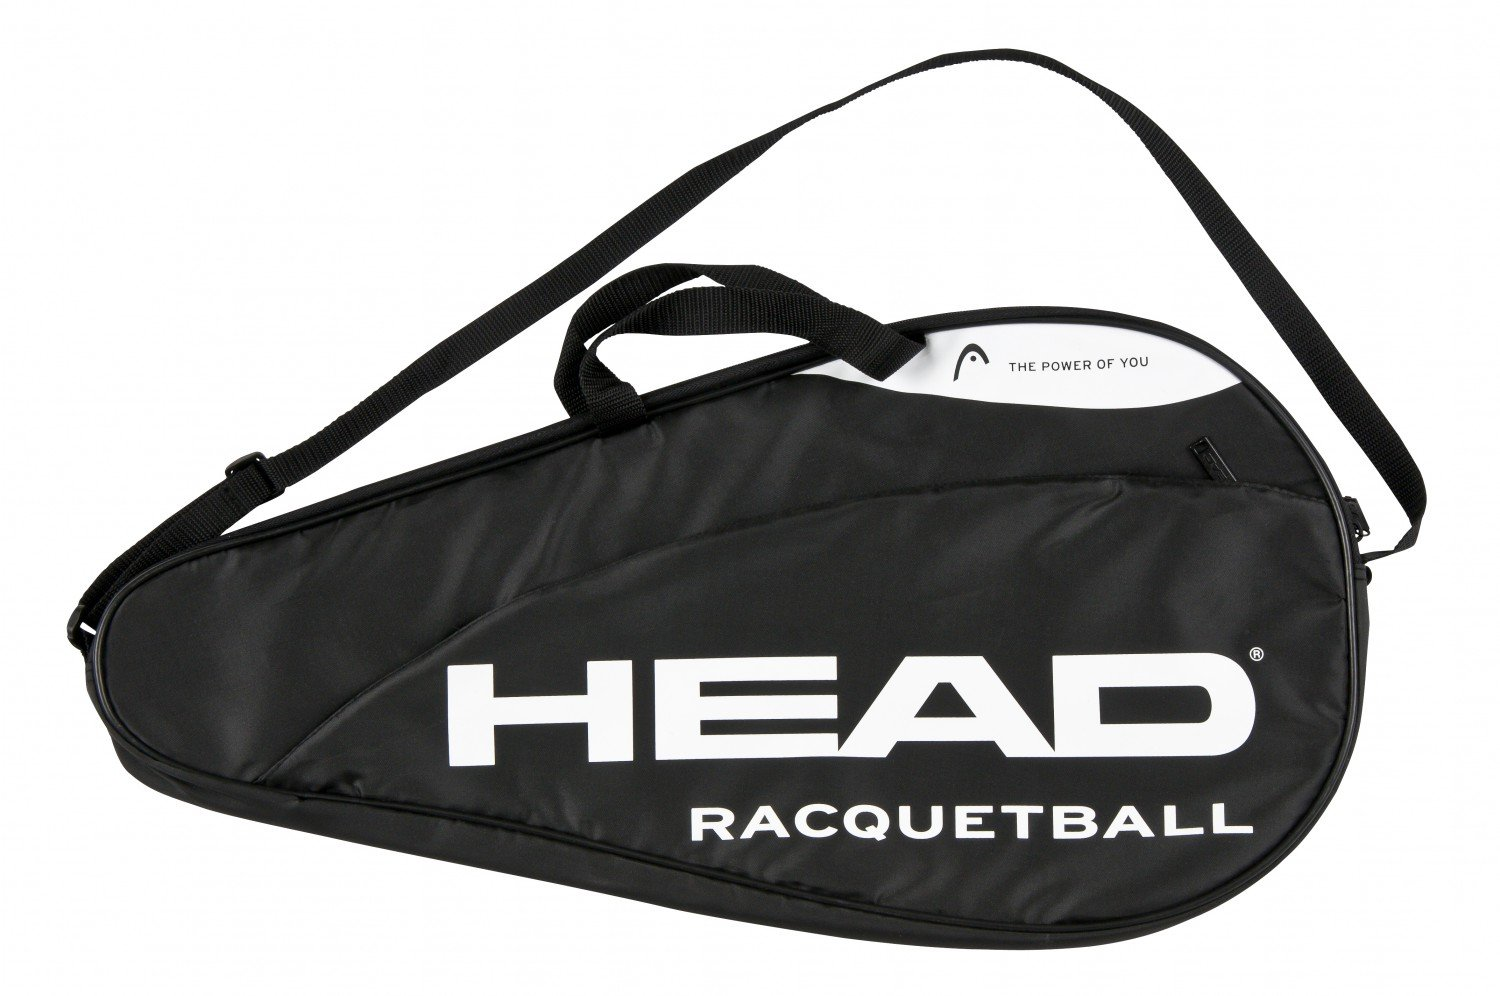 Head Deluxe Racketball Racket Cover by HEAD